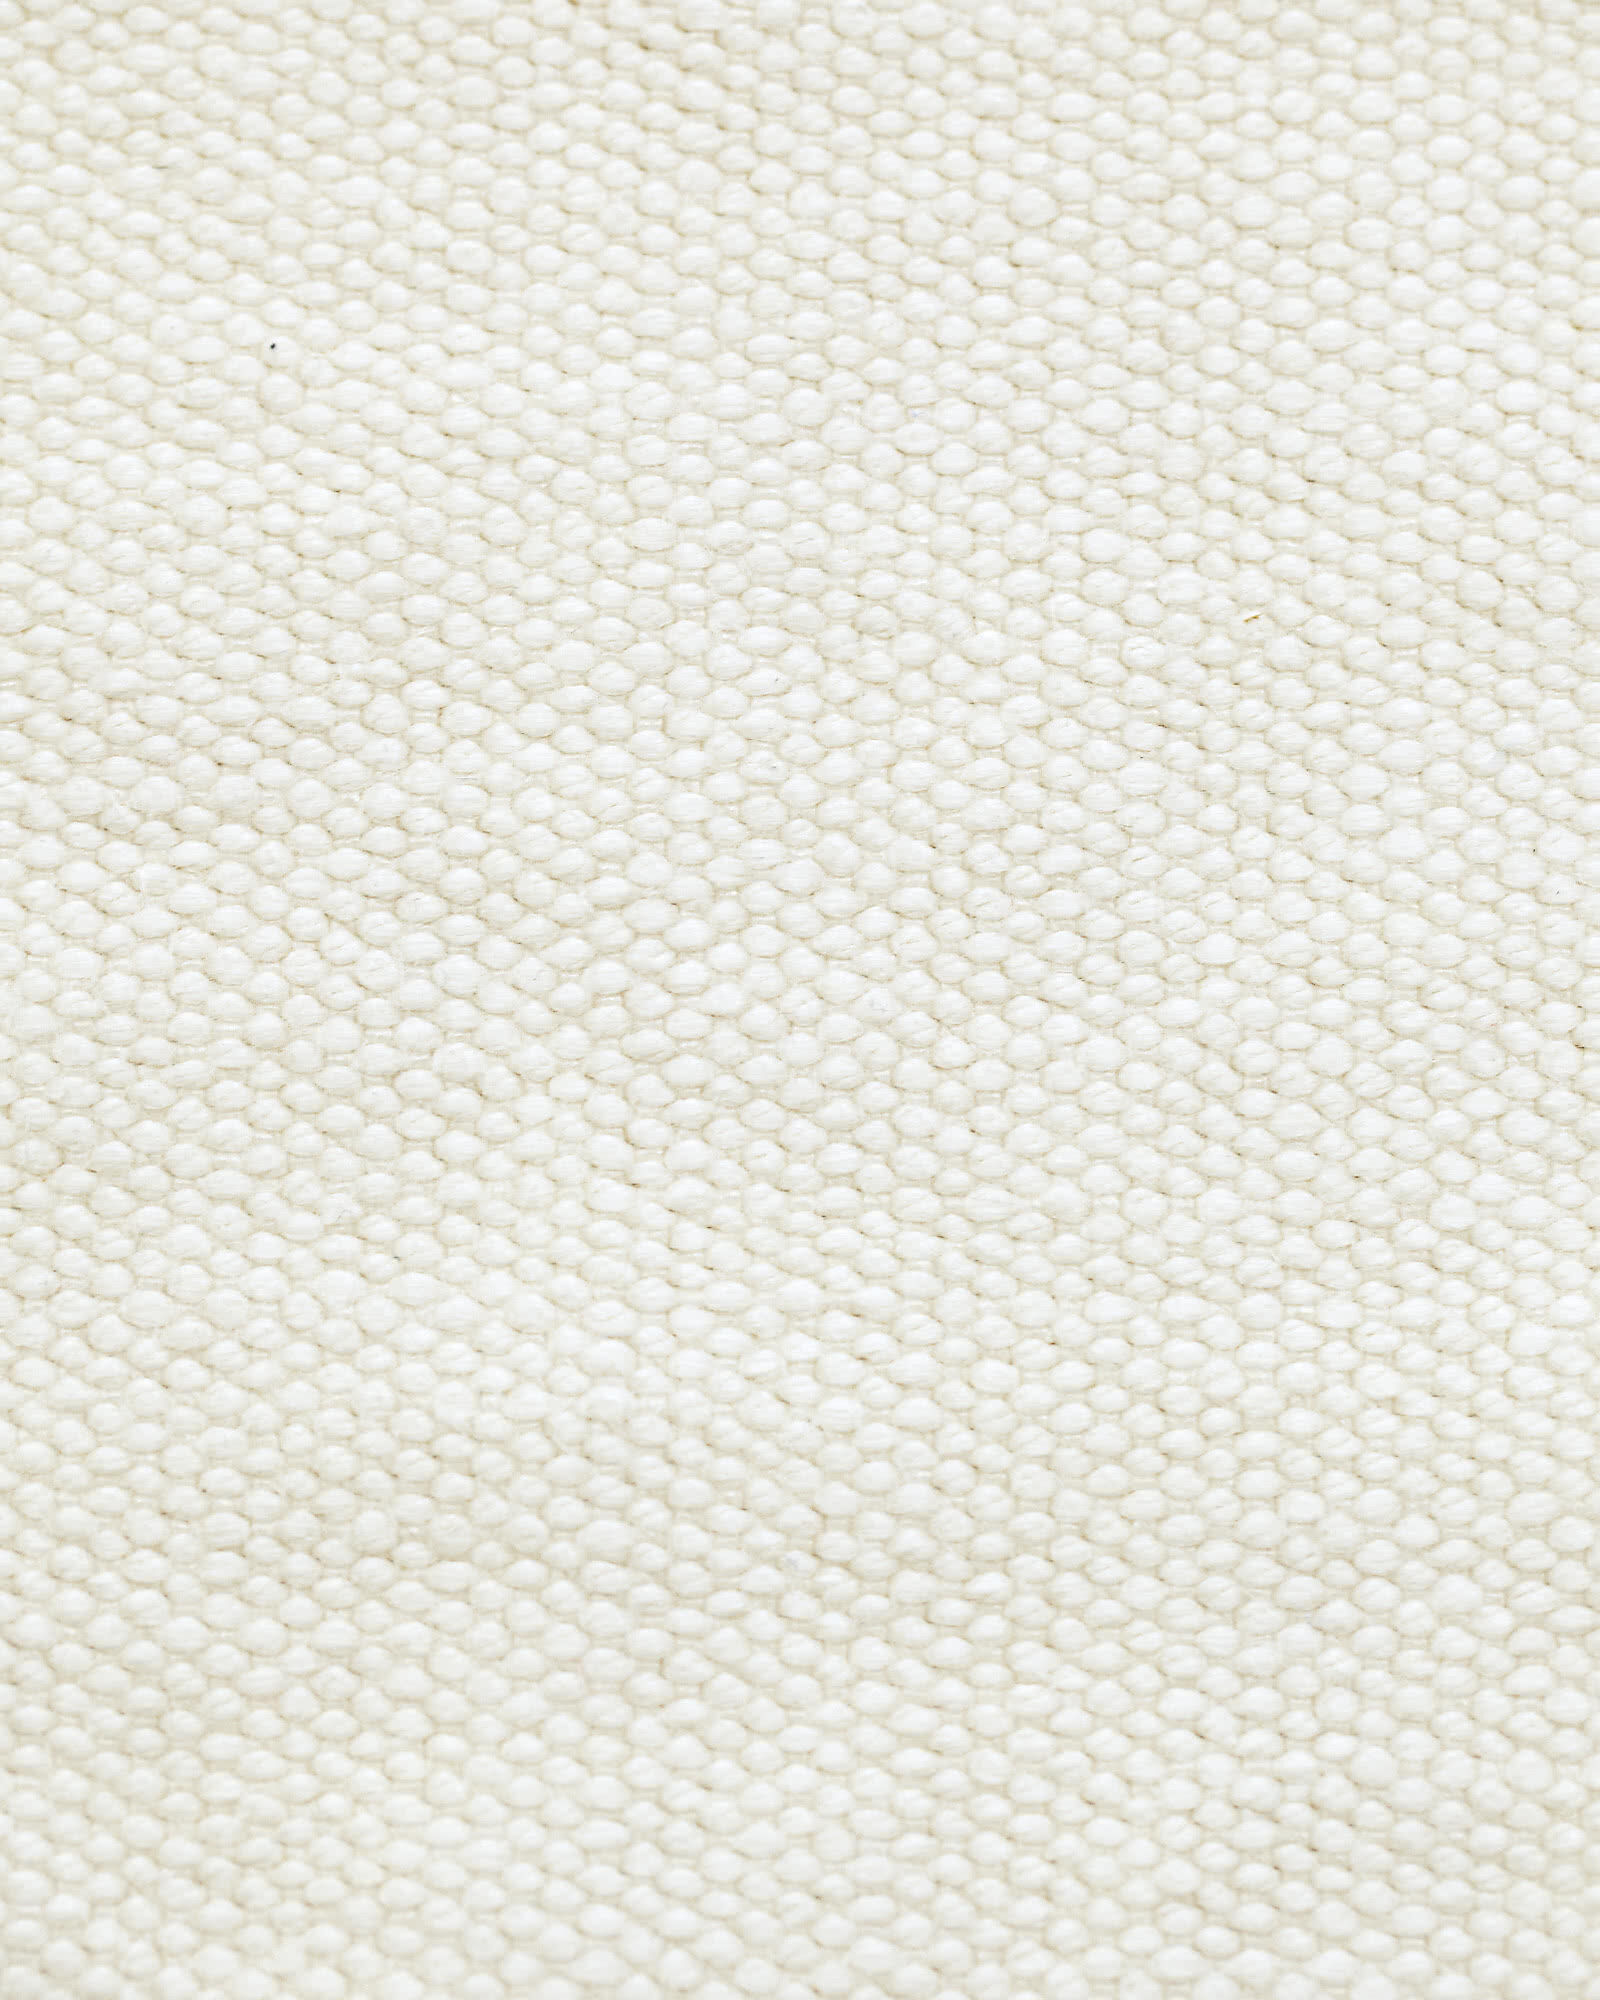 Chunky Linen - Oyster,